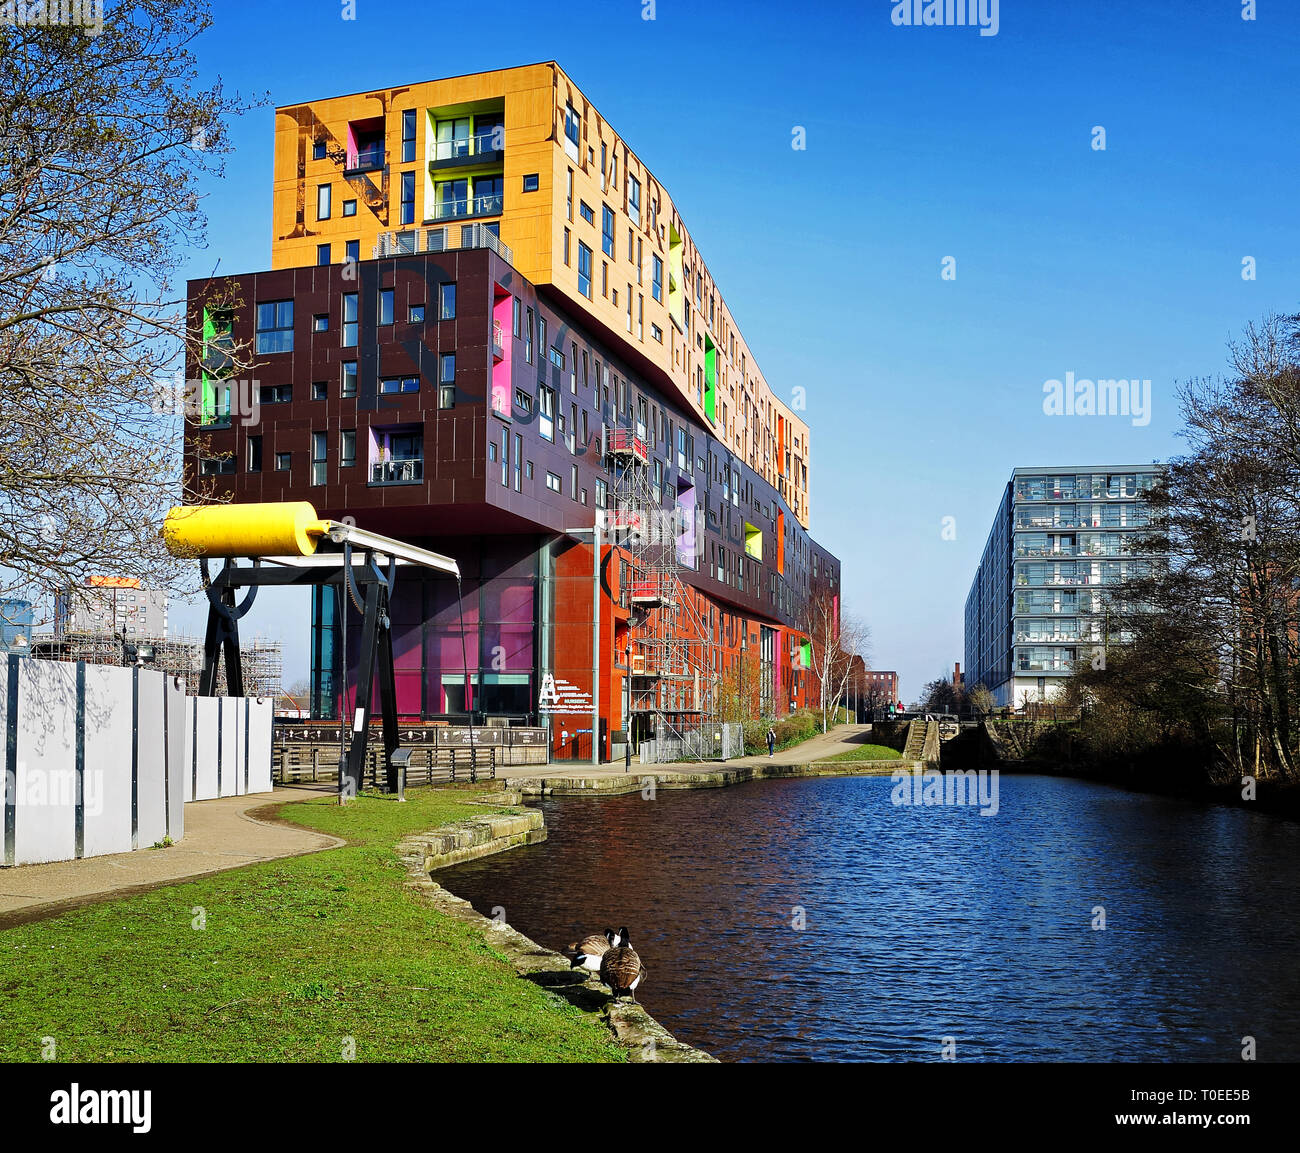 The colourful Chips Building, by Urban Splash, on the Ashton Canal, Ancoats, Manchester Stock Photo